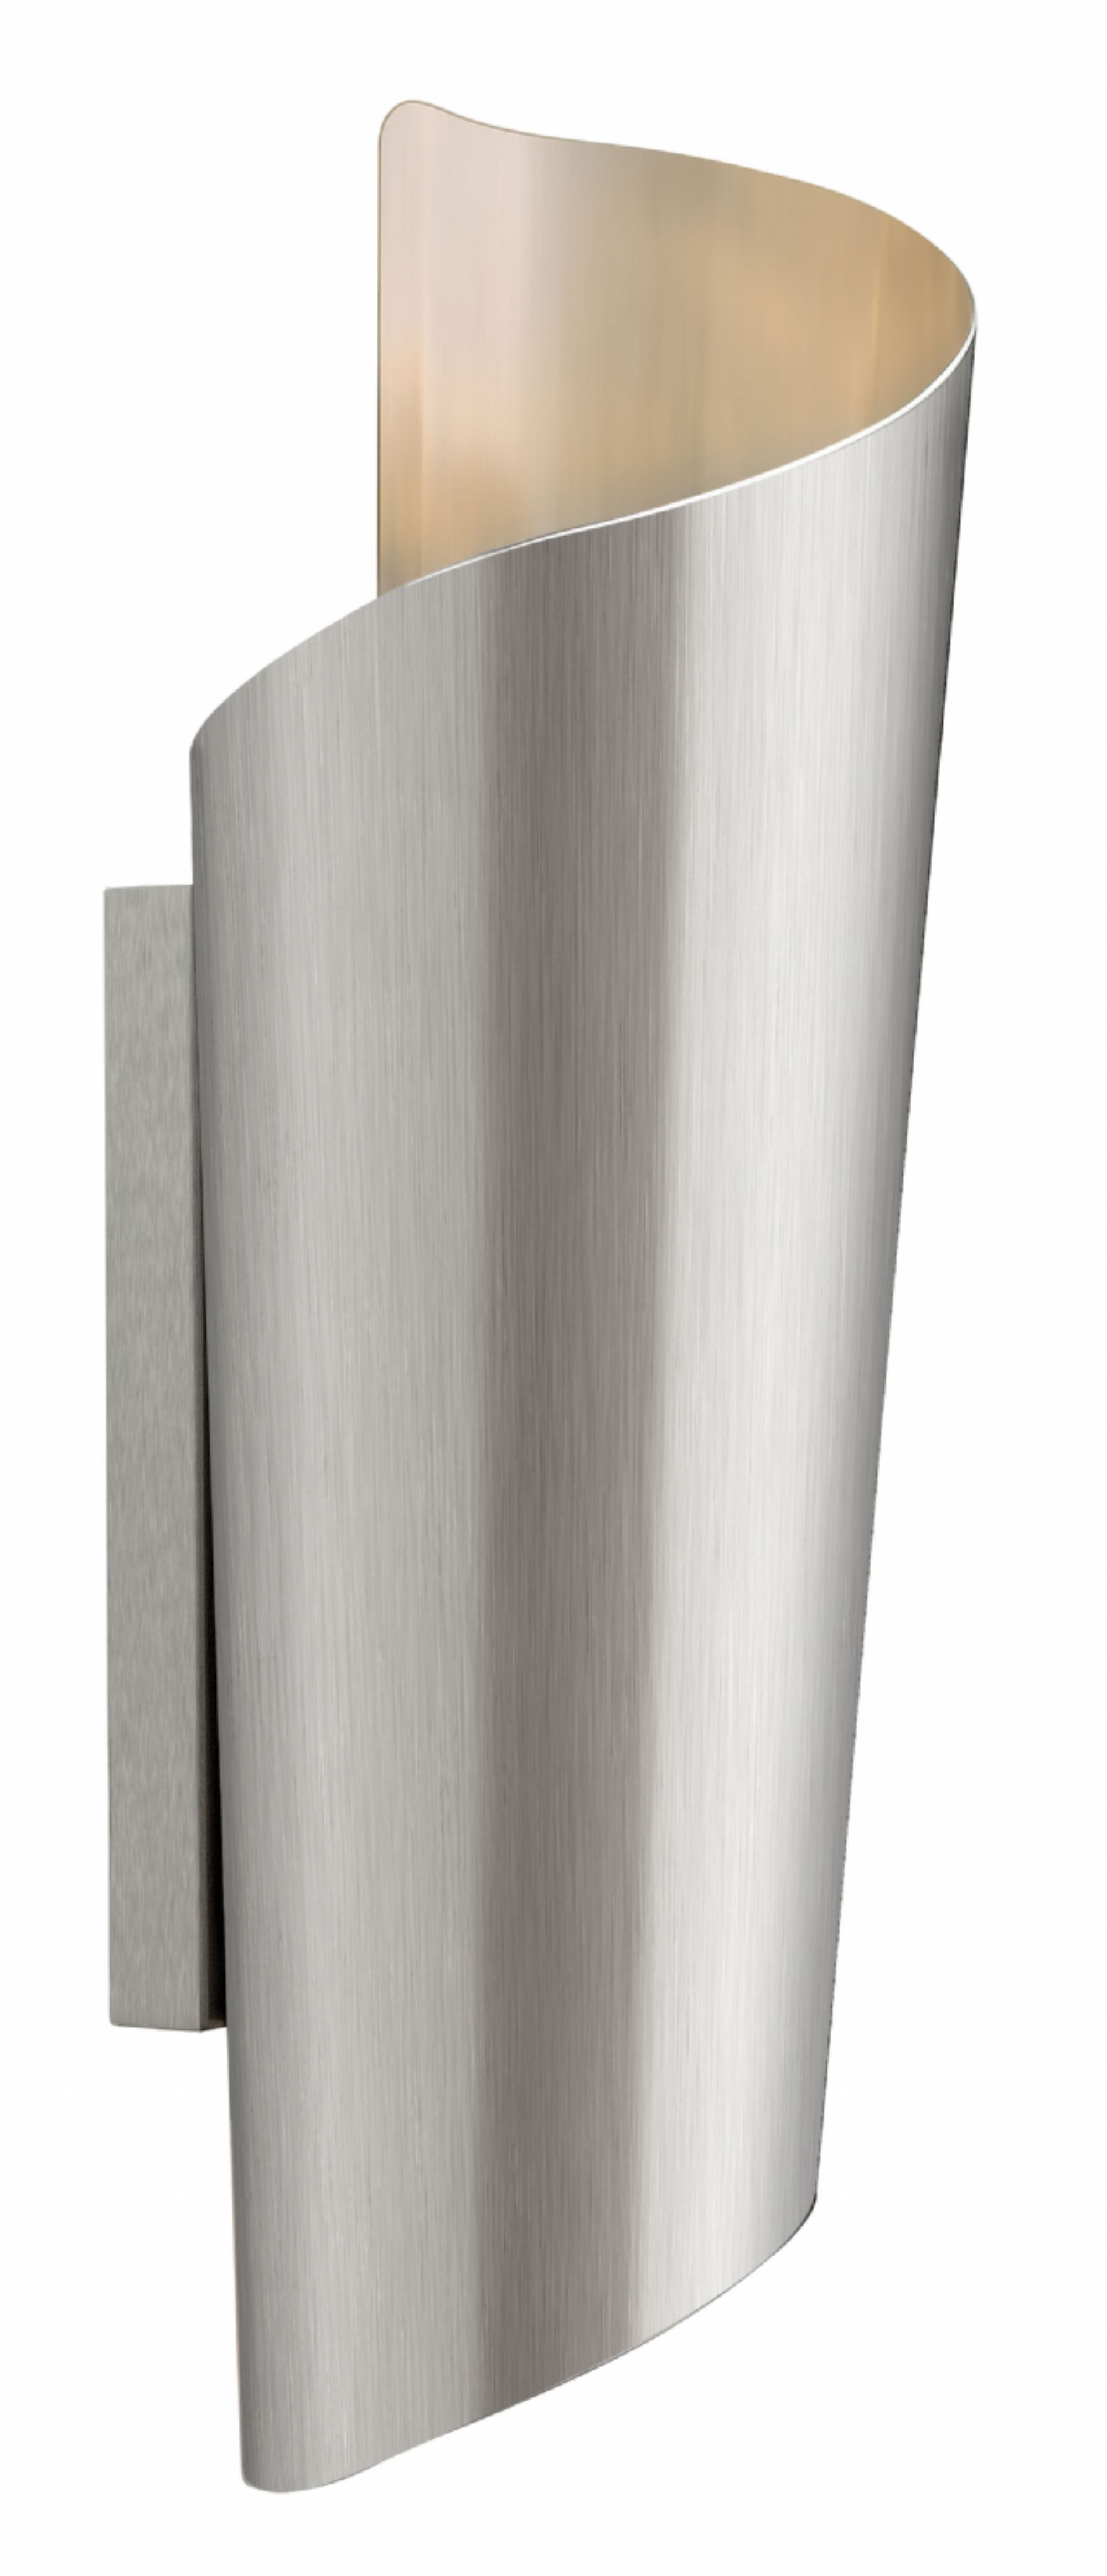 Most Popular Stainless Steel Surf > Exterior Wall Mount Intended For Modern Outdoor Hinkley Lighting (View 11 of 20)